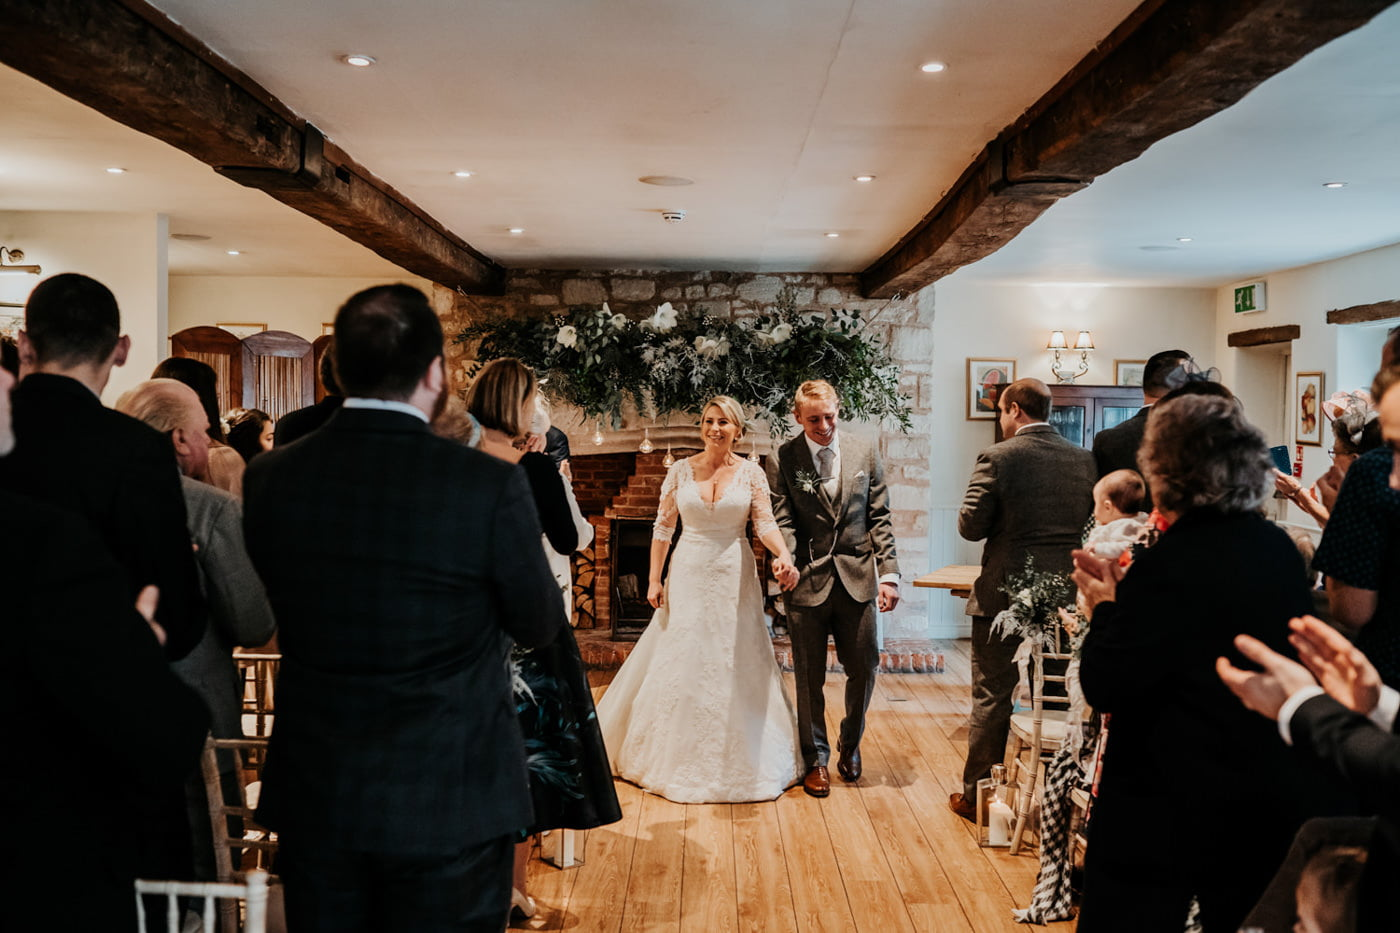 Emily and Rich, Moonraker Hotel, Wiltshire 33